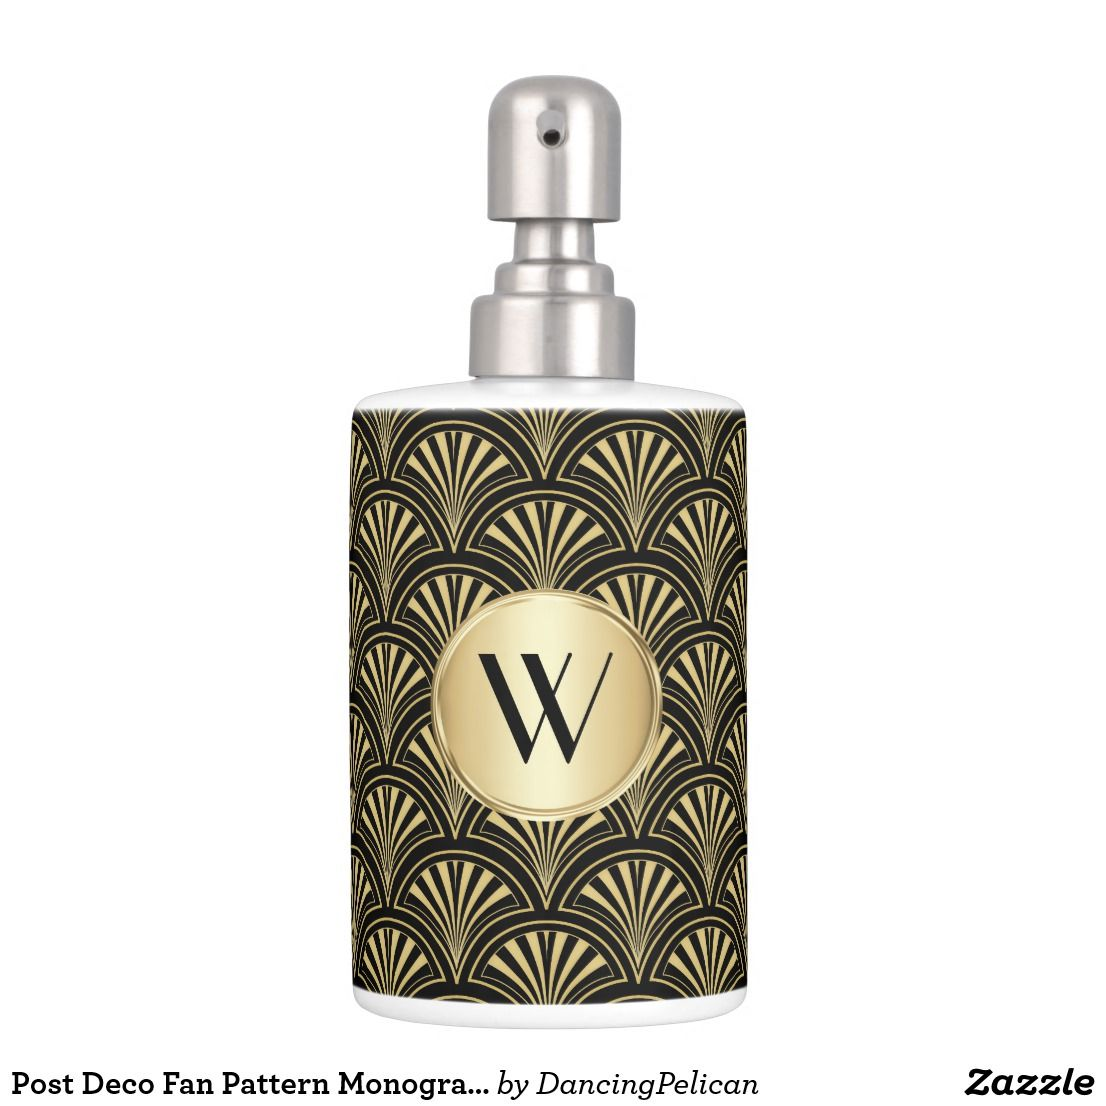 Post Deco Fan Pattern Monogrammed Soap Dispenser And Toothbrush ...